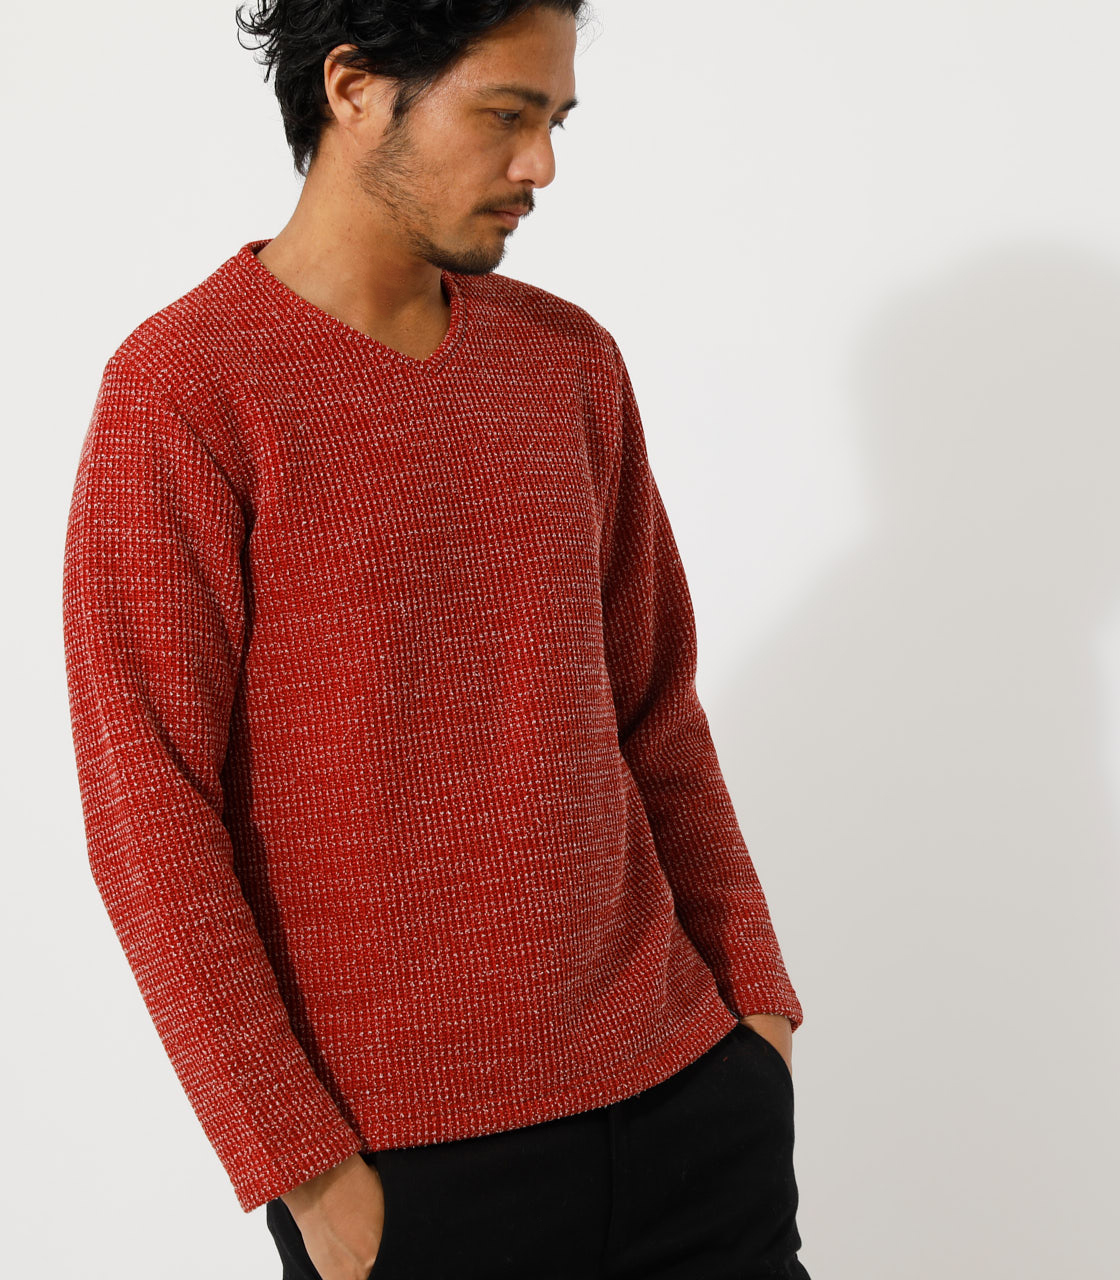 BRUSHED WAFFLE V/N LONG TEE/ブラッシュドワッフルVネックロングTシャツ 詳細画像 柄RED 2